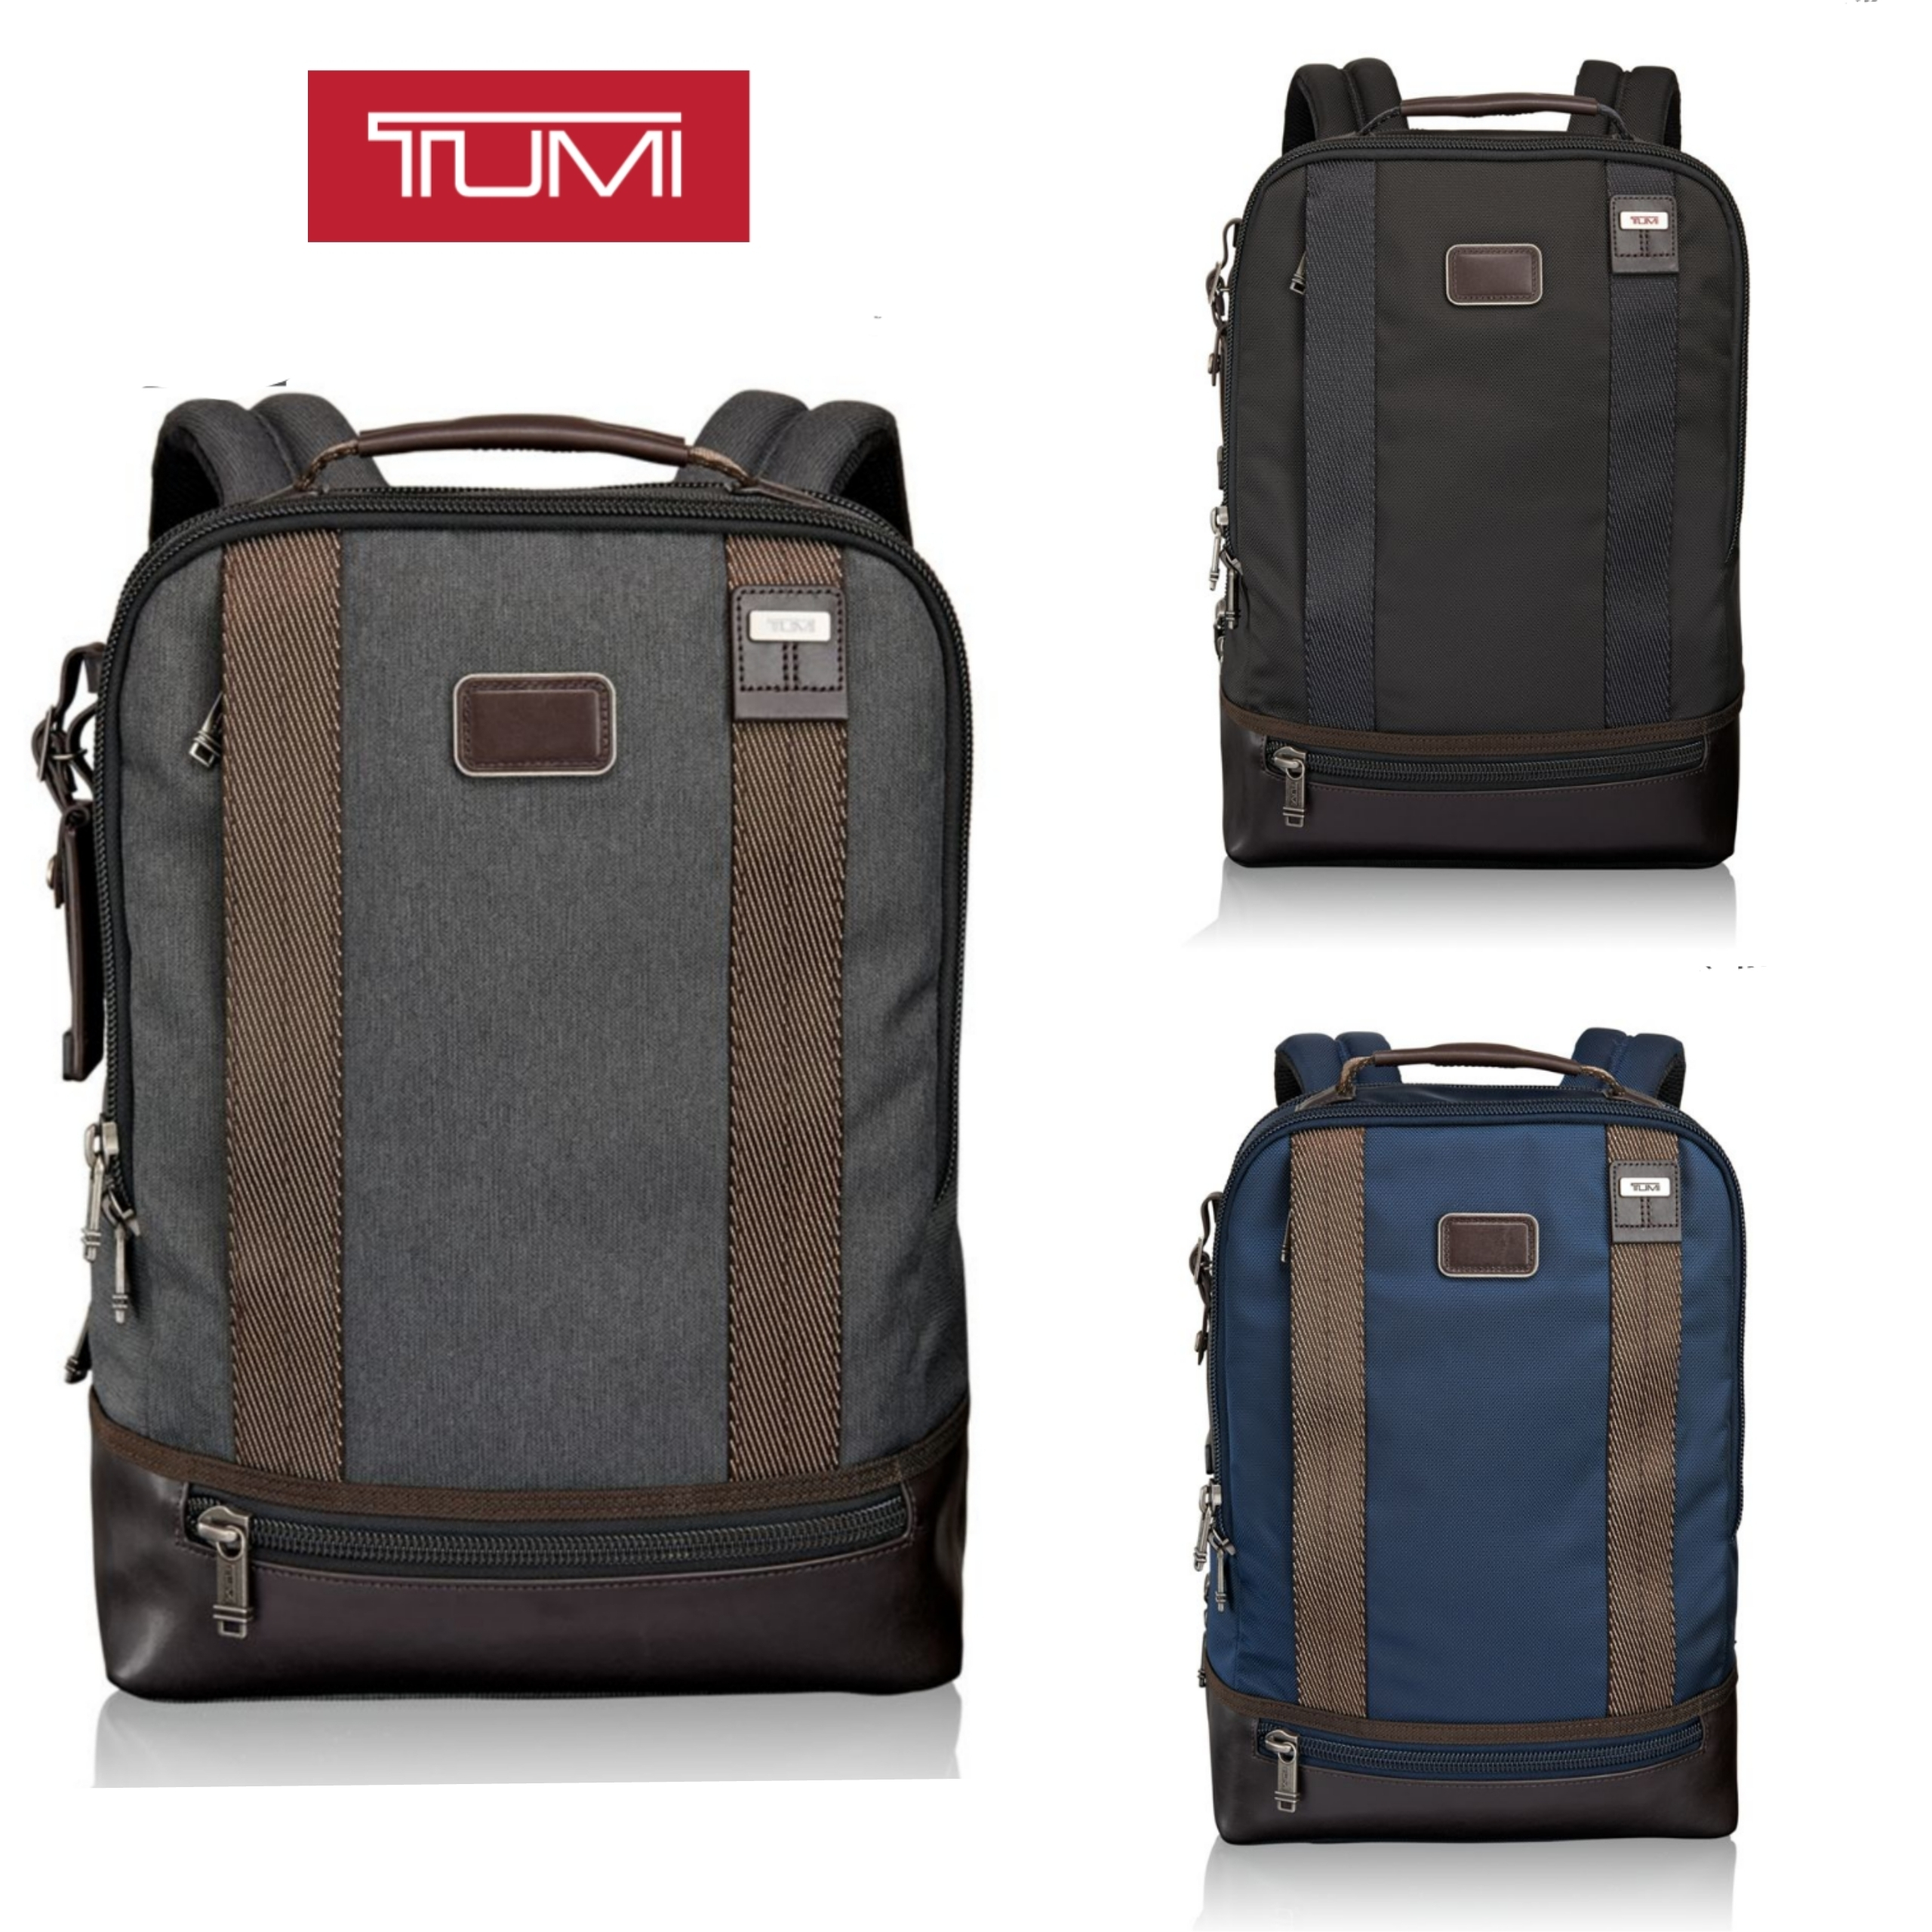 Sale»» Search. FREE SHIPPING Tumi T-Pass Slim Brief. Now At $ more details. VOYAGEUR. Canton Crossbody. Now At $ more details. VOYAGEUR. Ruma Crossbody. Now At $ more details. ALPHA 2. Medium Travel Tote. Now .